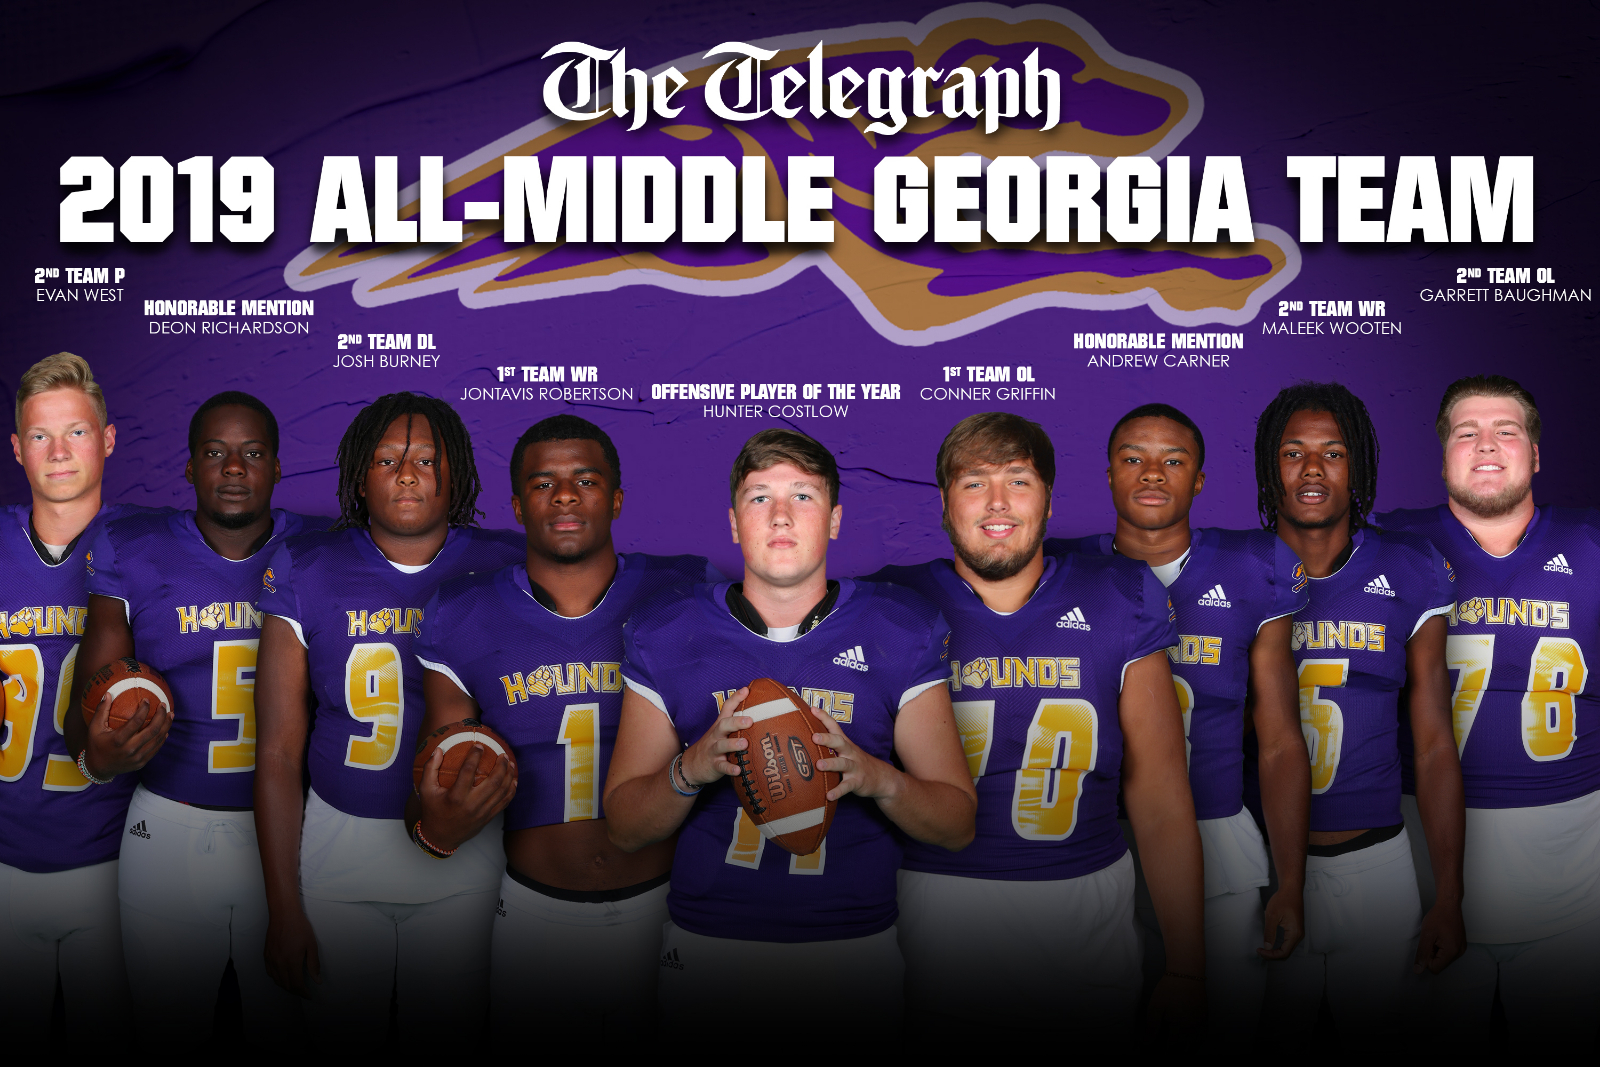 Greyhounds Named to 2019 All-Middle Georgia Team